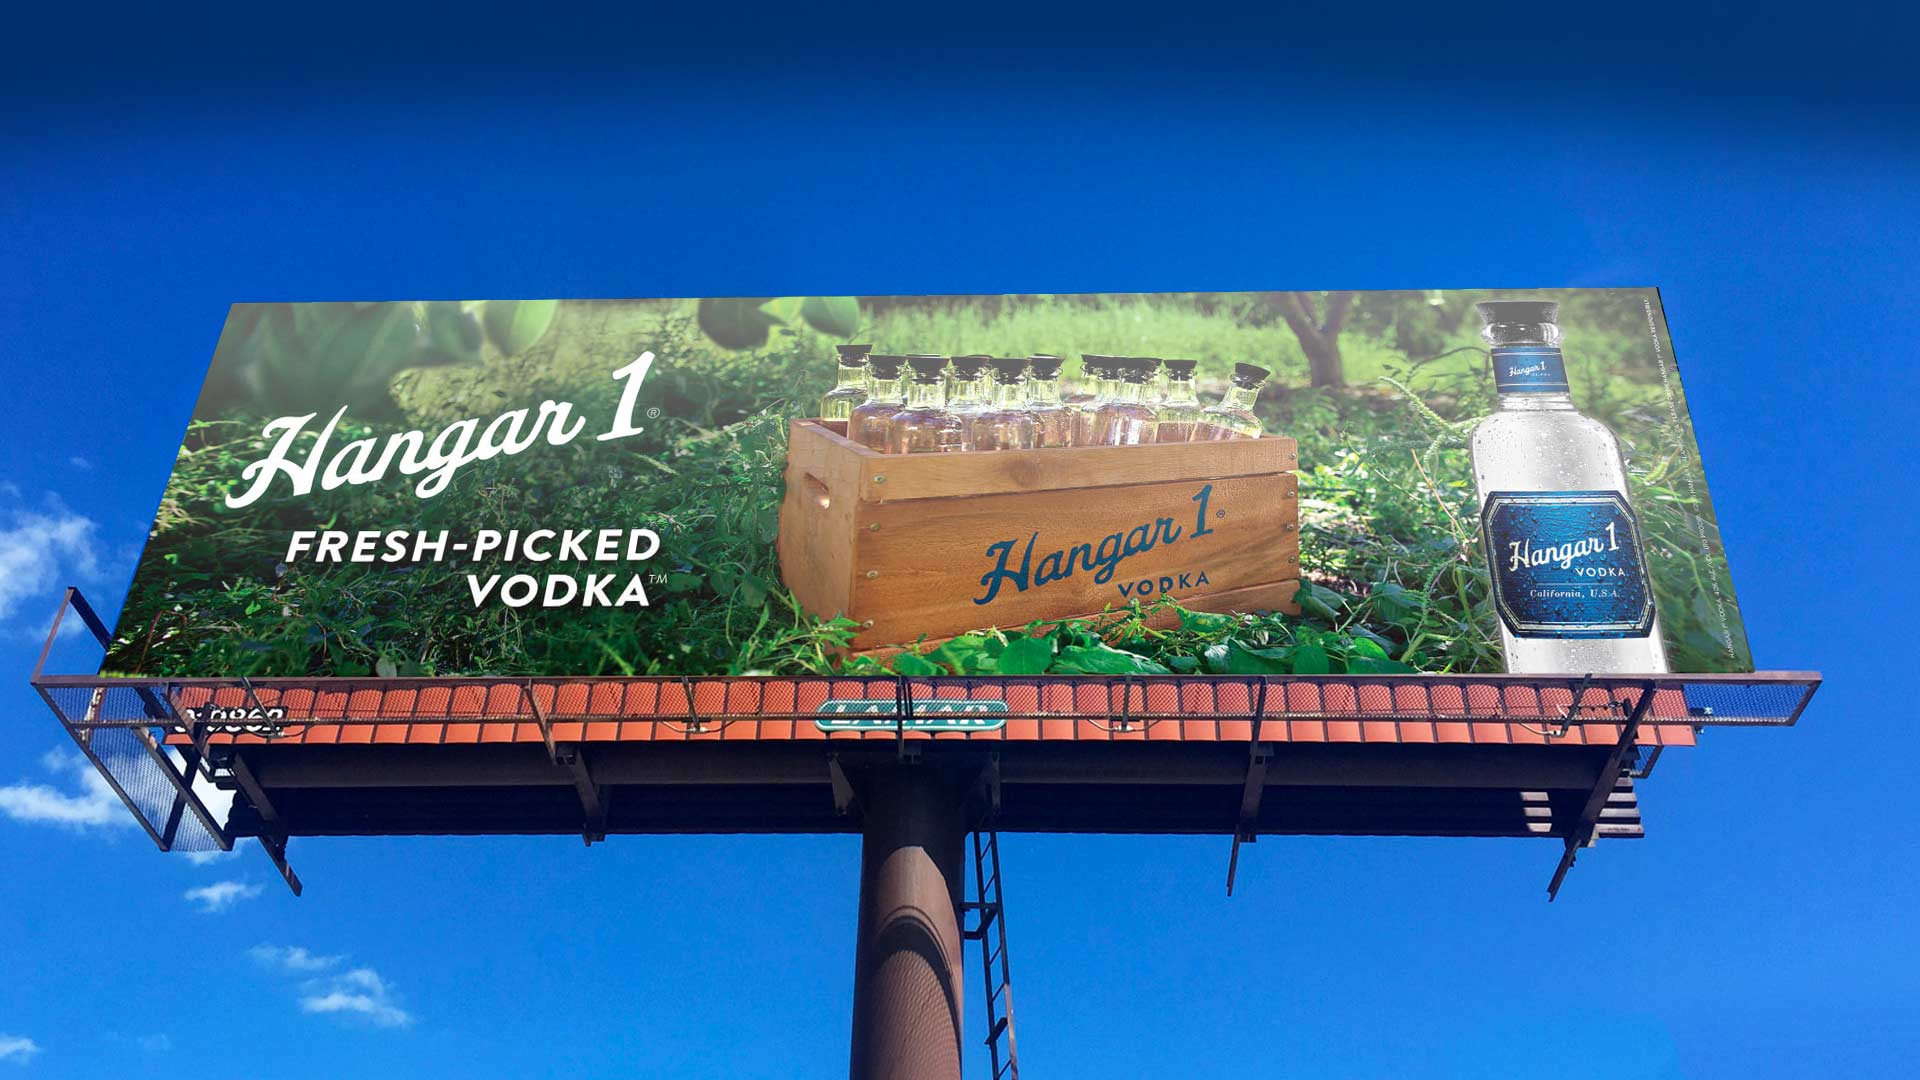 Hangar 1 - Crate Billboard